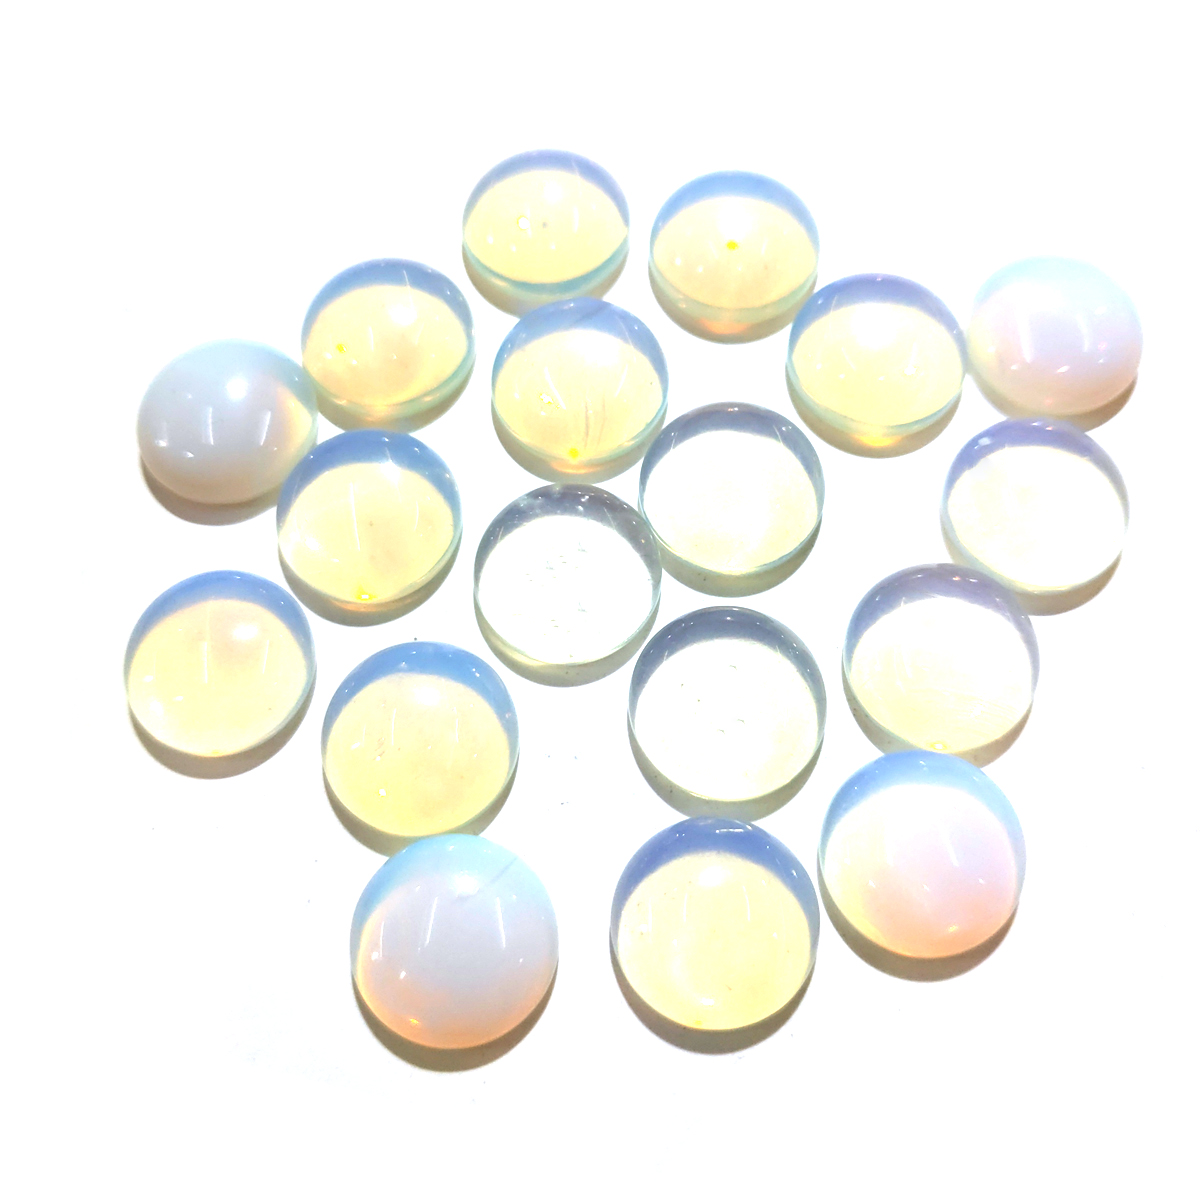 10 PCS Opal Natural Stones Cabochon 12mm 14mm 16mm 18mm 20mm Round No Hole For Making Jewelry DIY